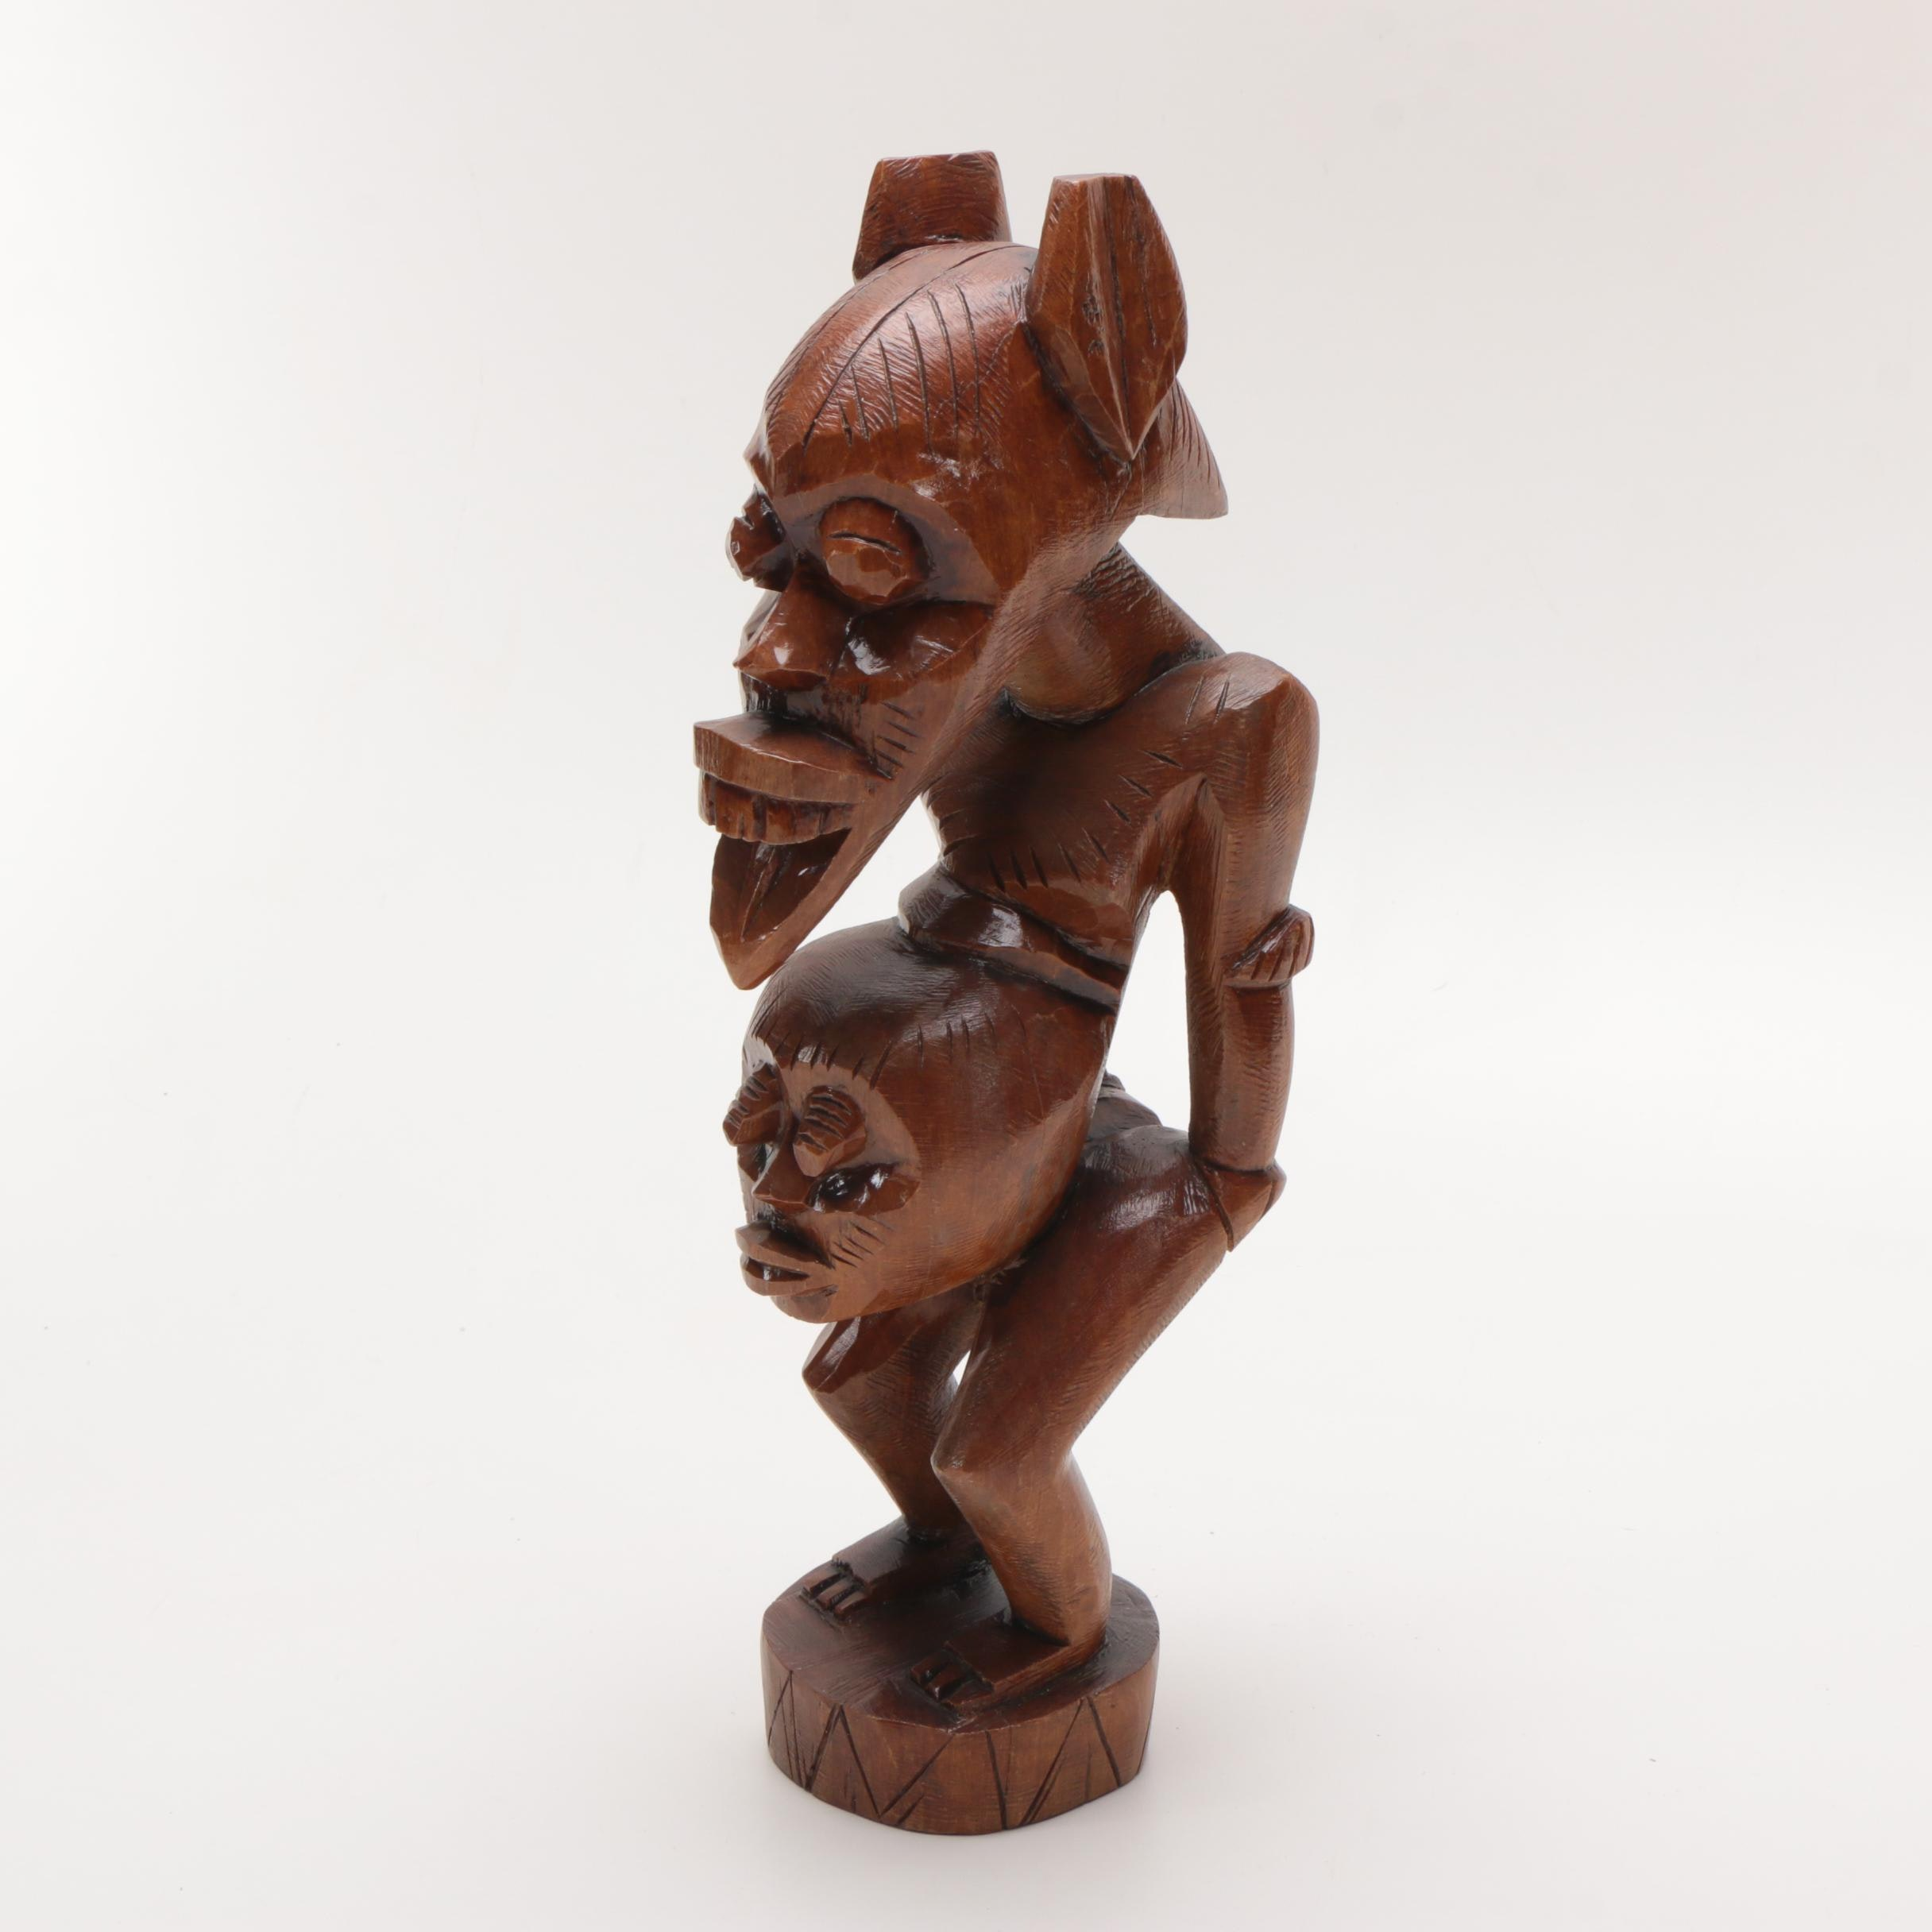 Carved Wood African Fertility Sculpture